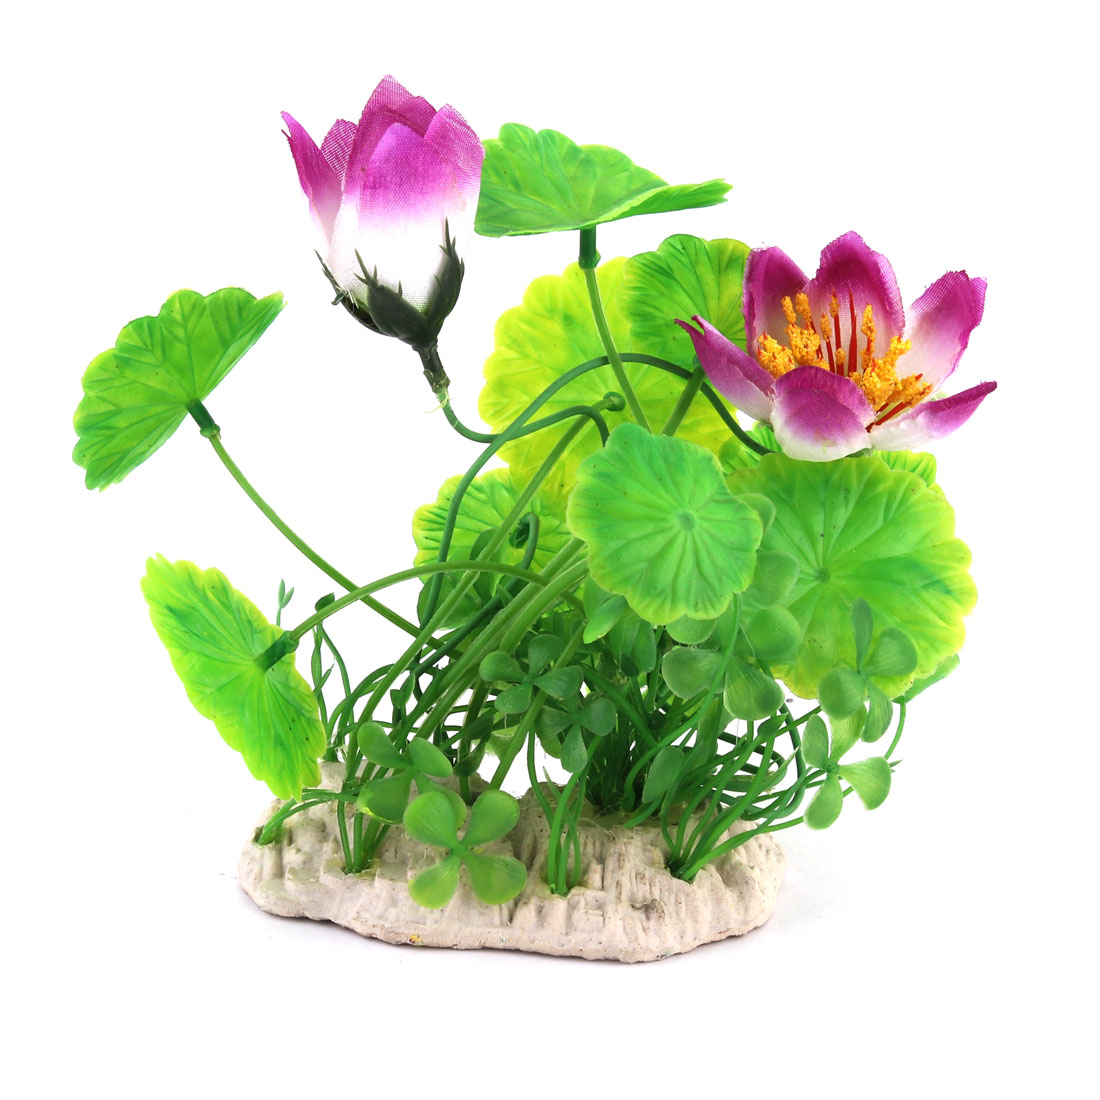 Aquarium Fishbowl Lotus Leaf Shape Emulation Water Plant Ornament Green Purple